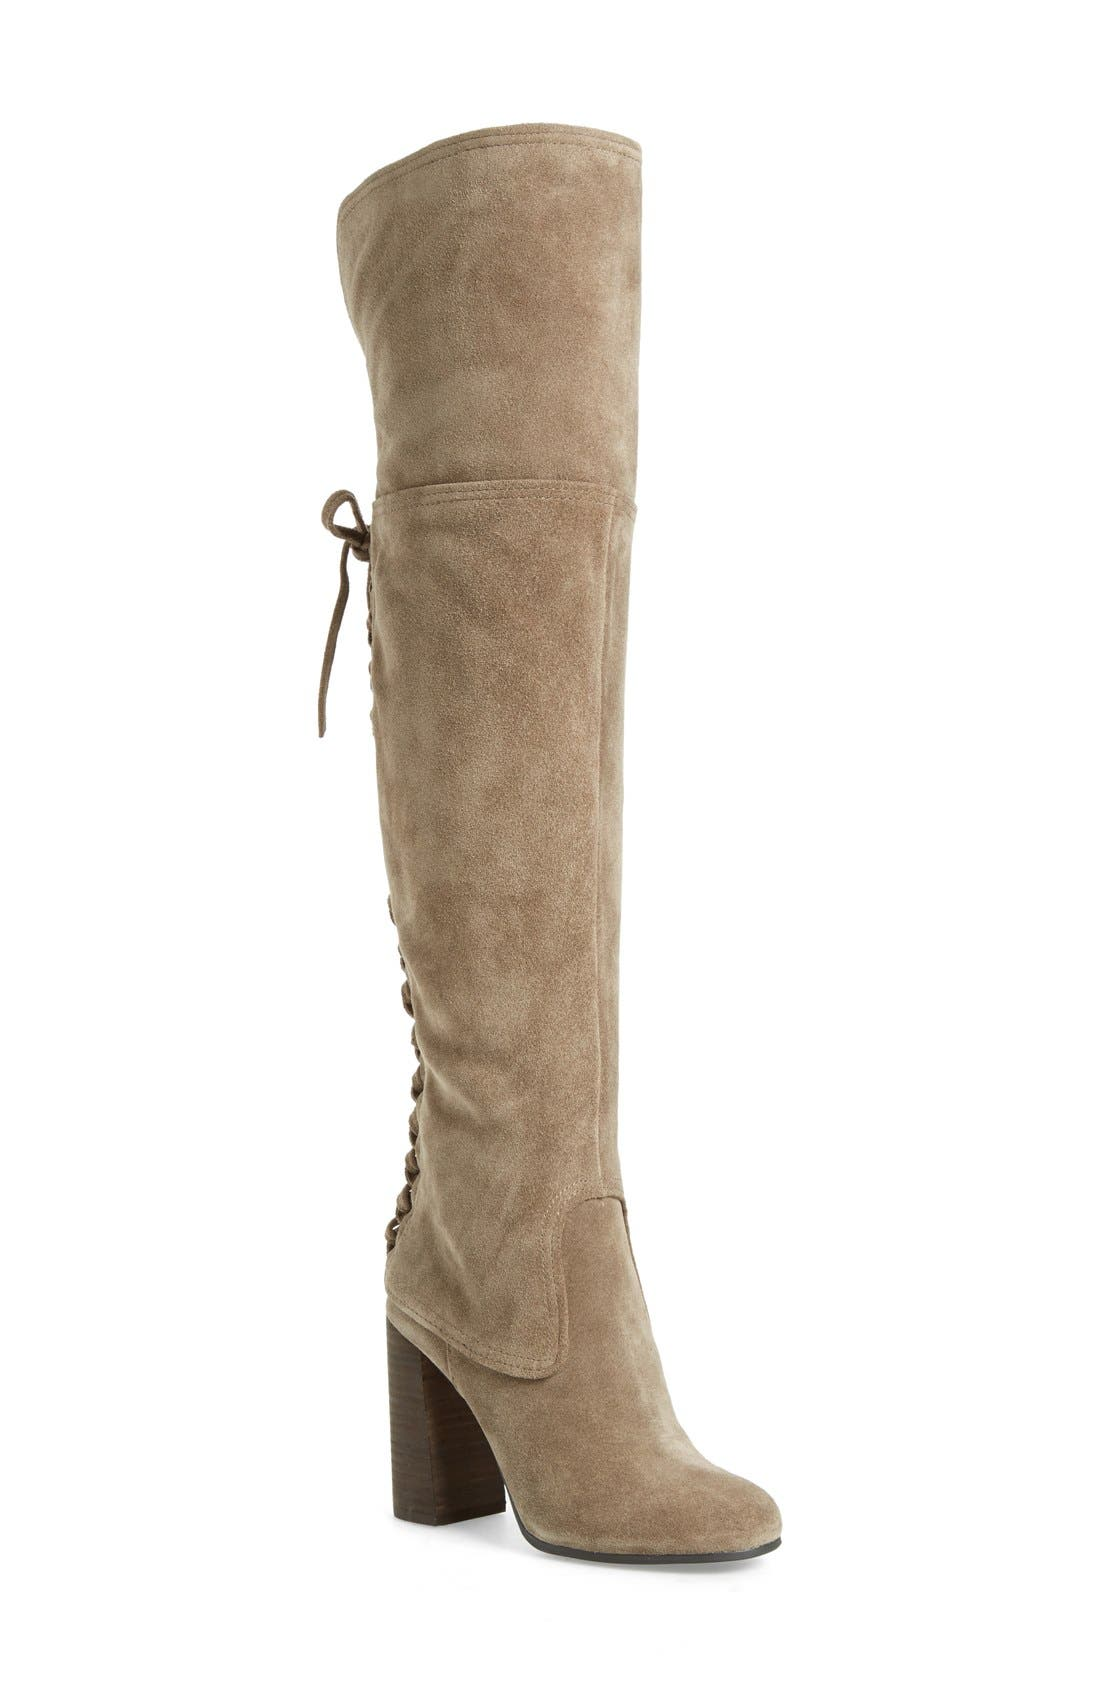 Alternate Image 1 Selected - Vince Camuto Tolla Over the Knee Boot (Women)